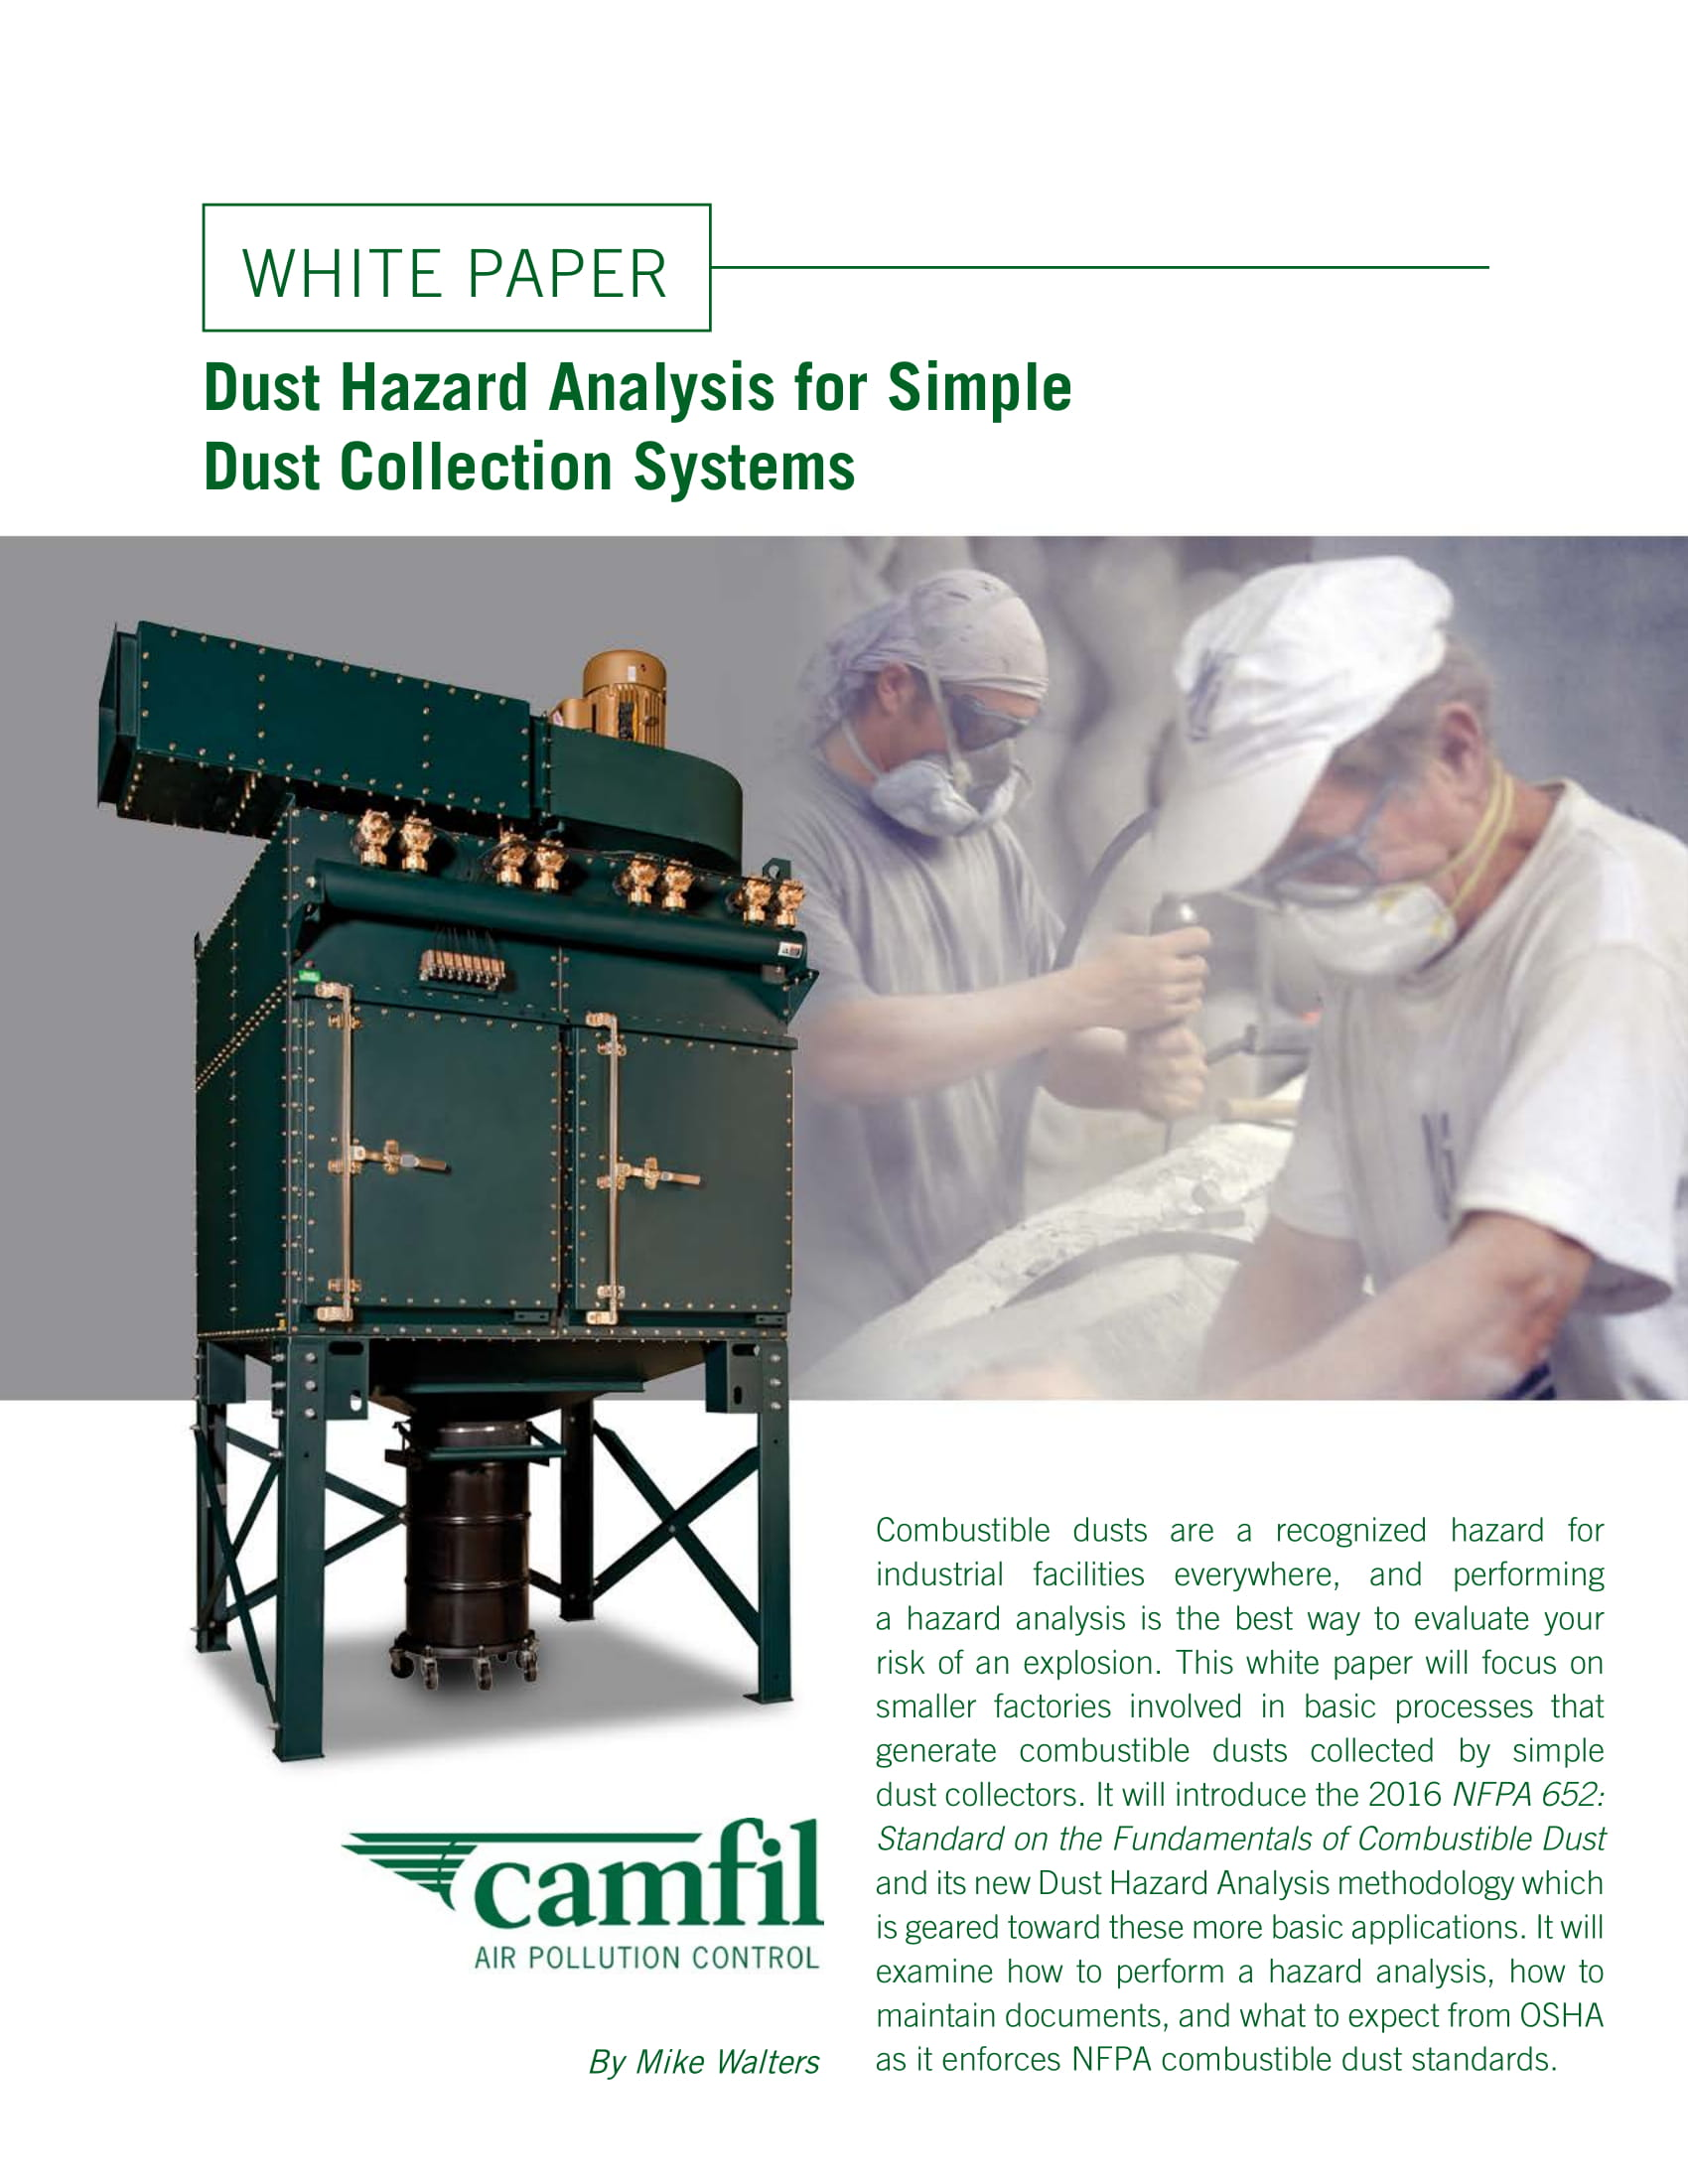 dust hazard analysis for simple dust collection systems